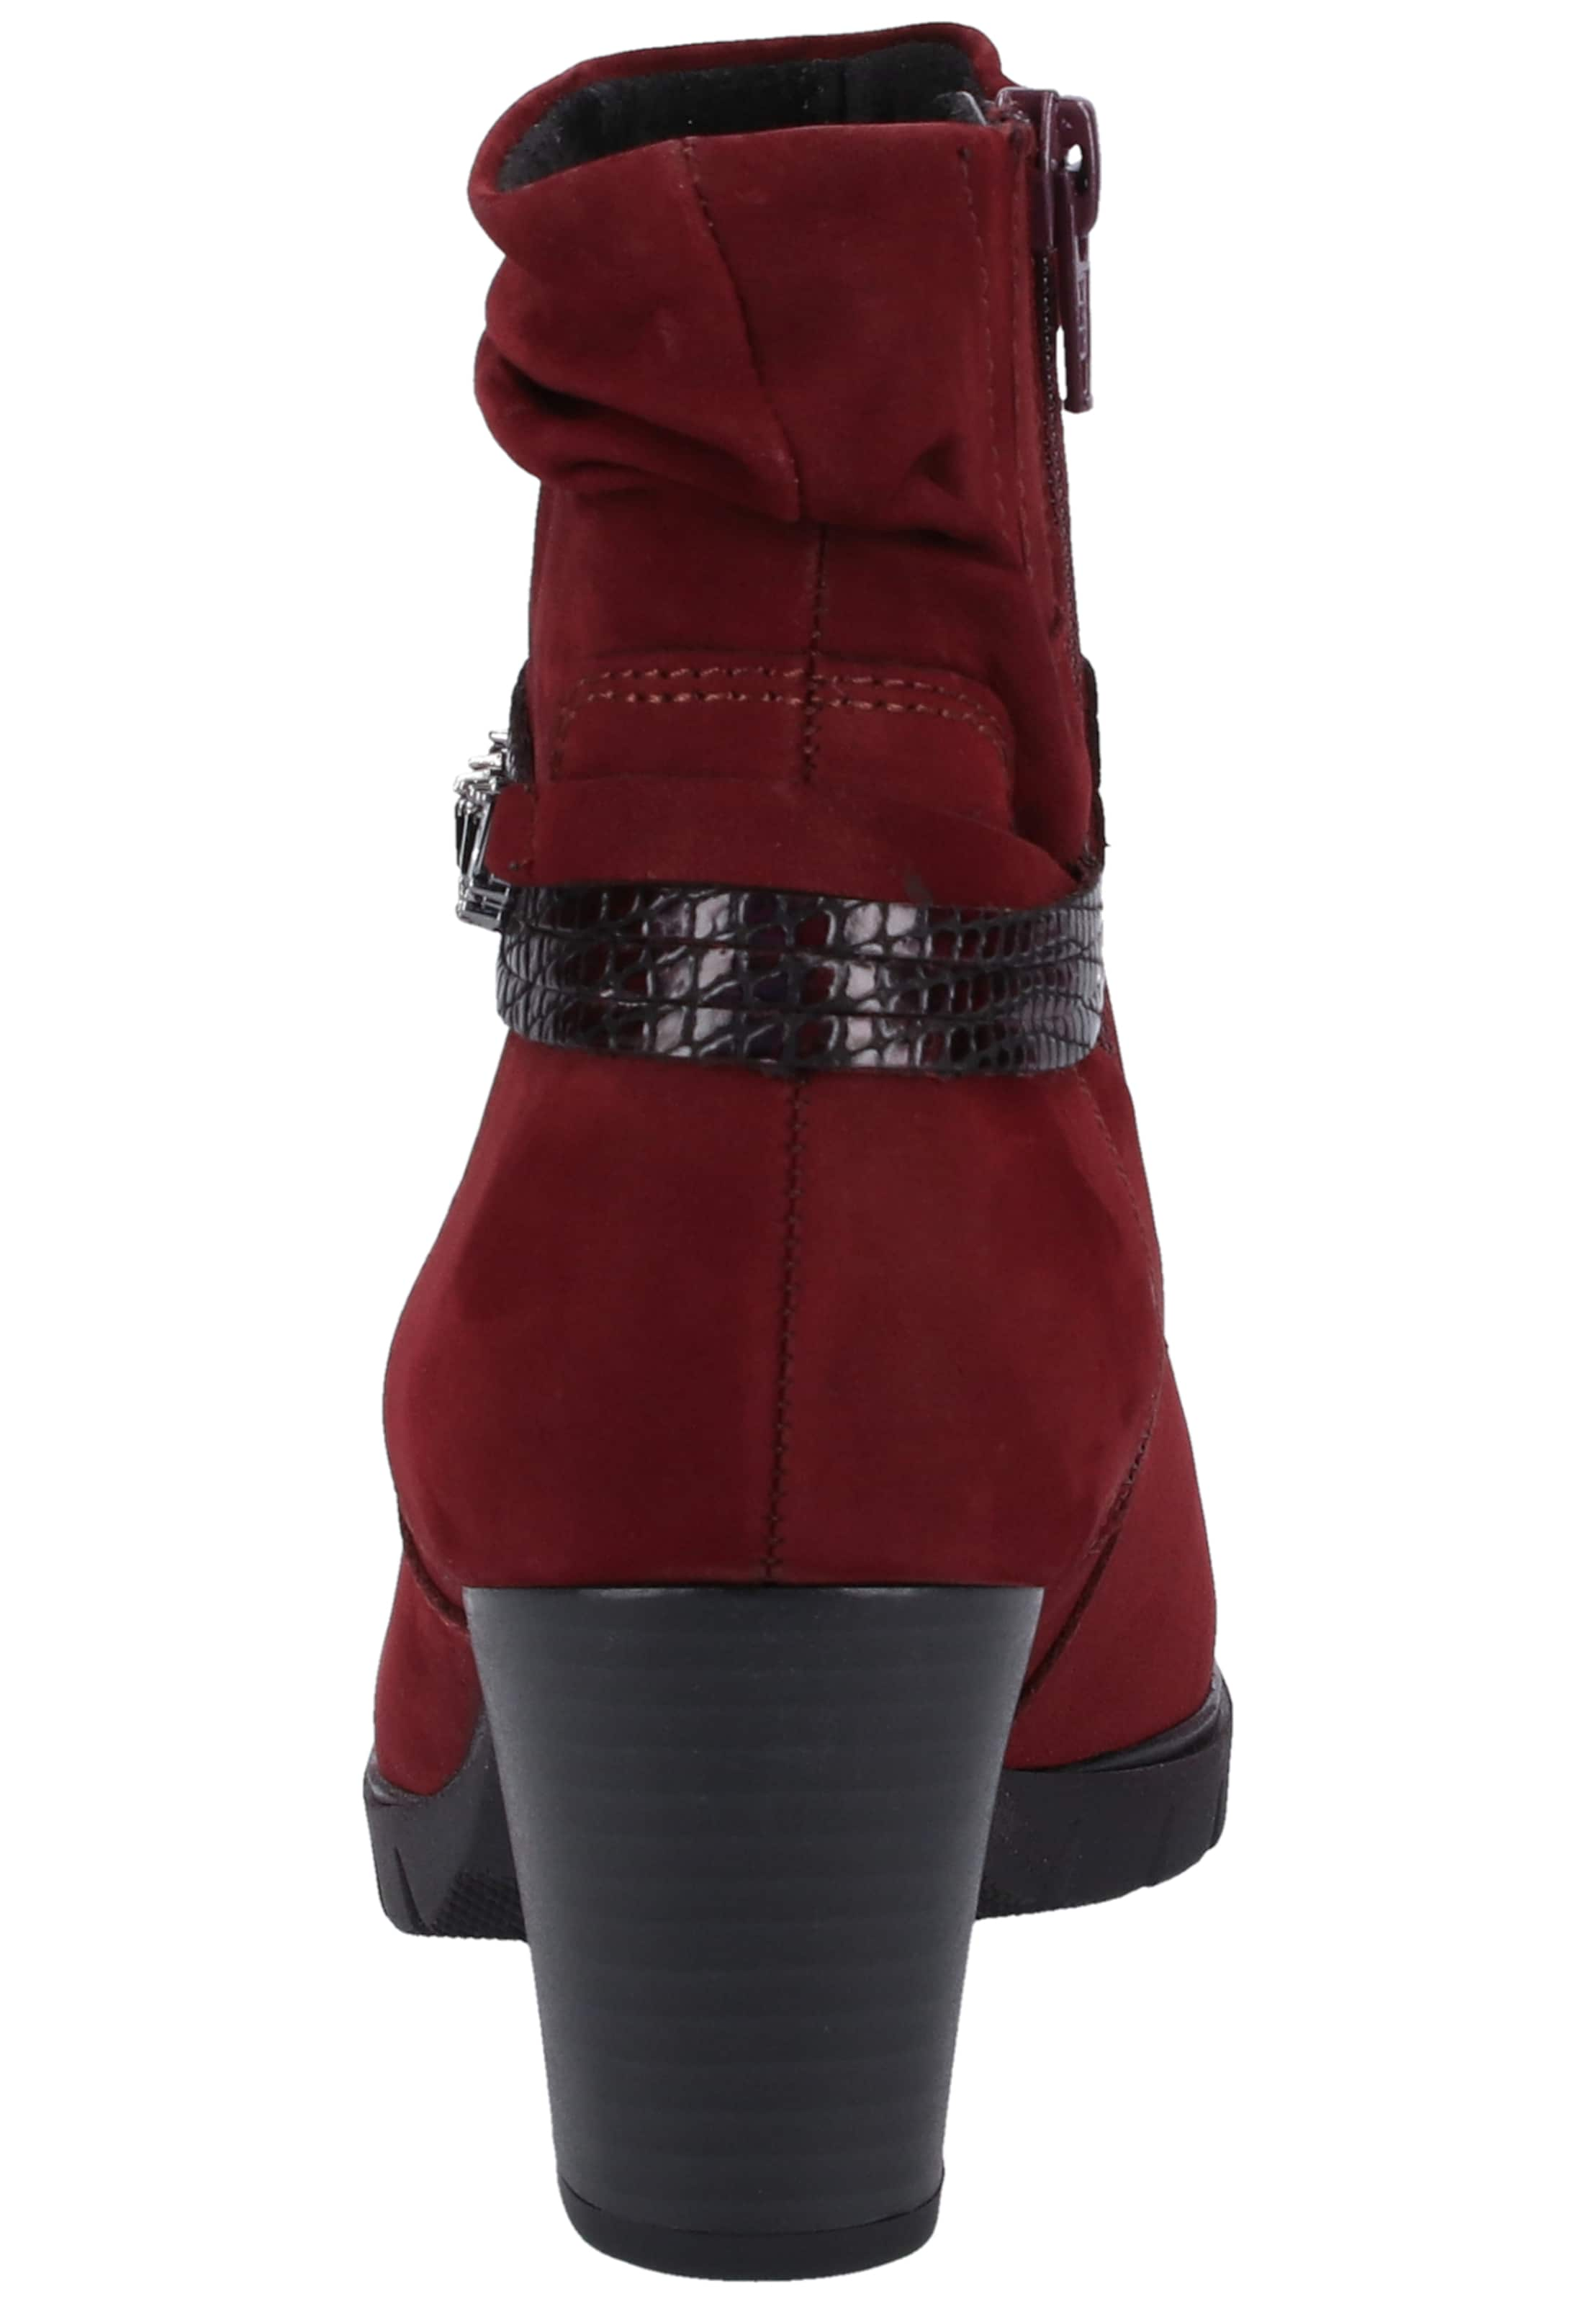 Gabor Rouge Bottines En Foncé Gabor Rouge En Bottines lcTFJK1